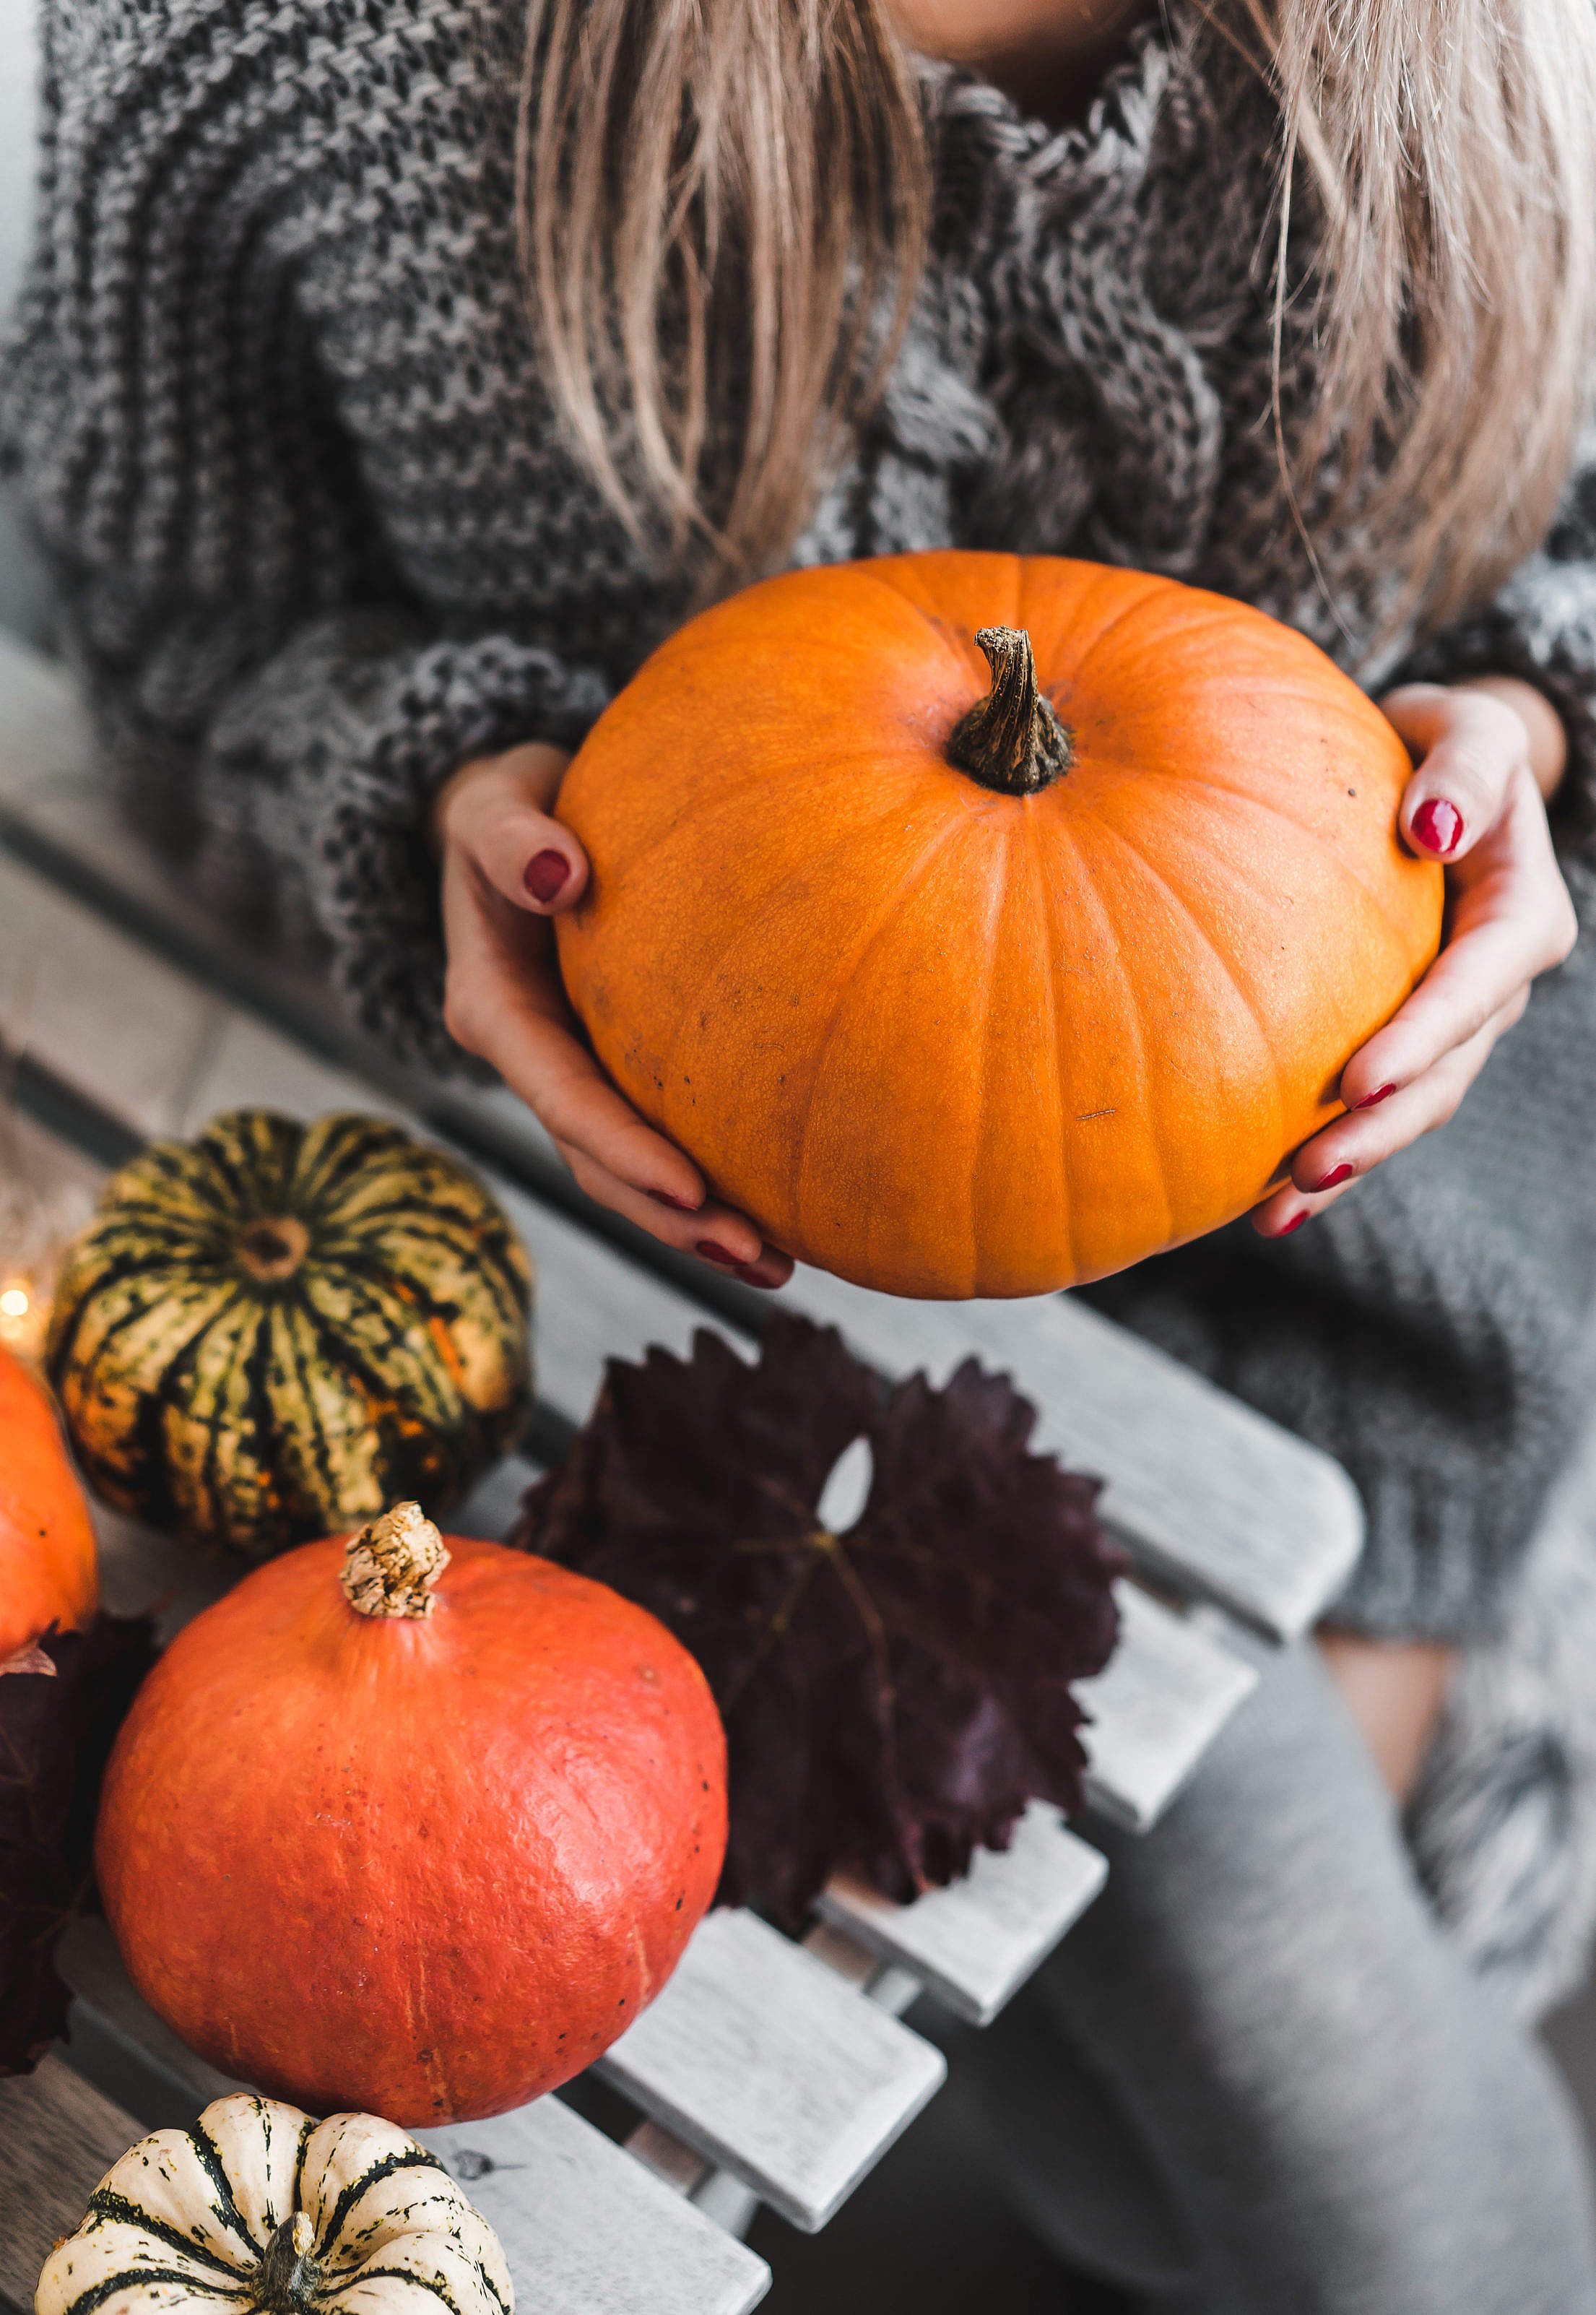 Woman Holding a Halloween Pumpkin Free Stock Photo